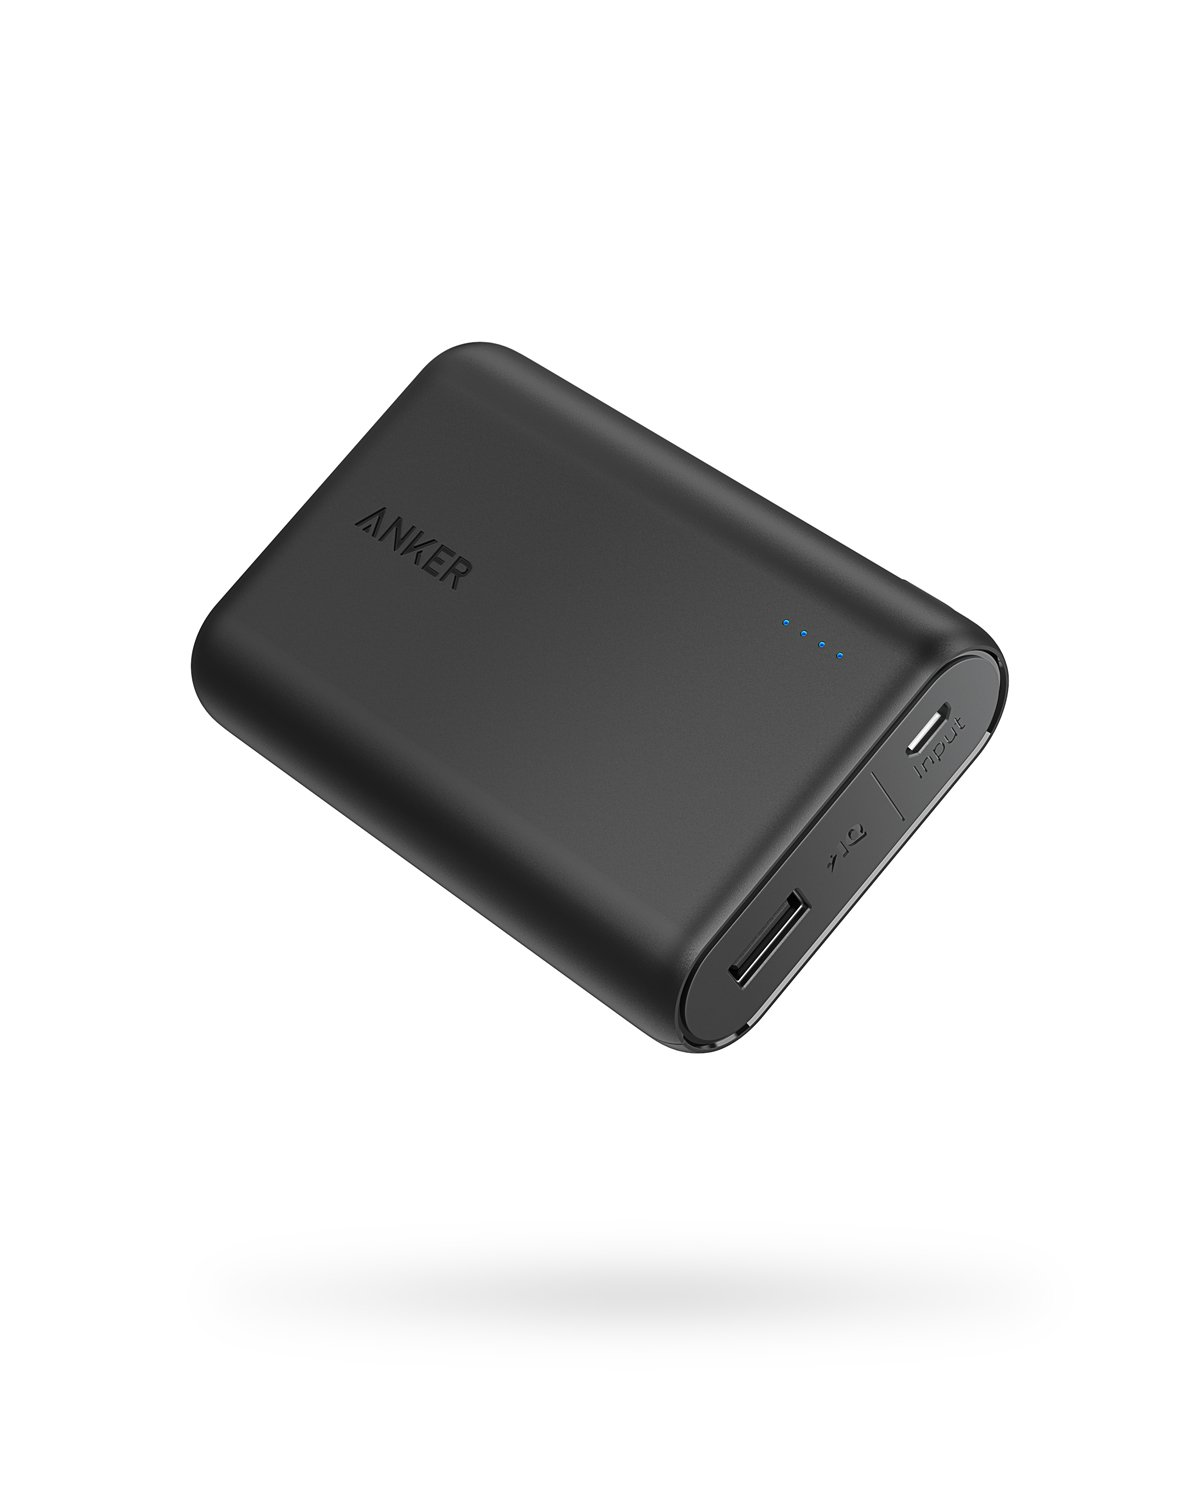 Anker PowerCore 10000 Portable Charger, One Of The